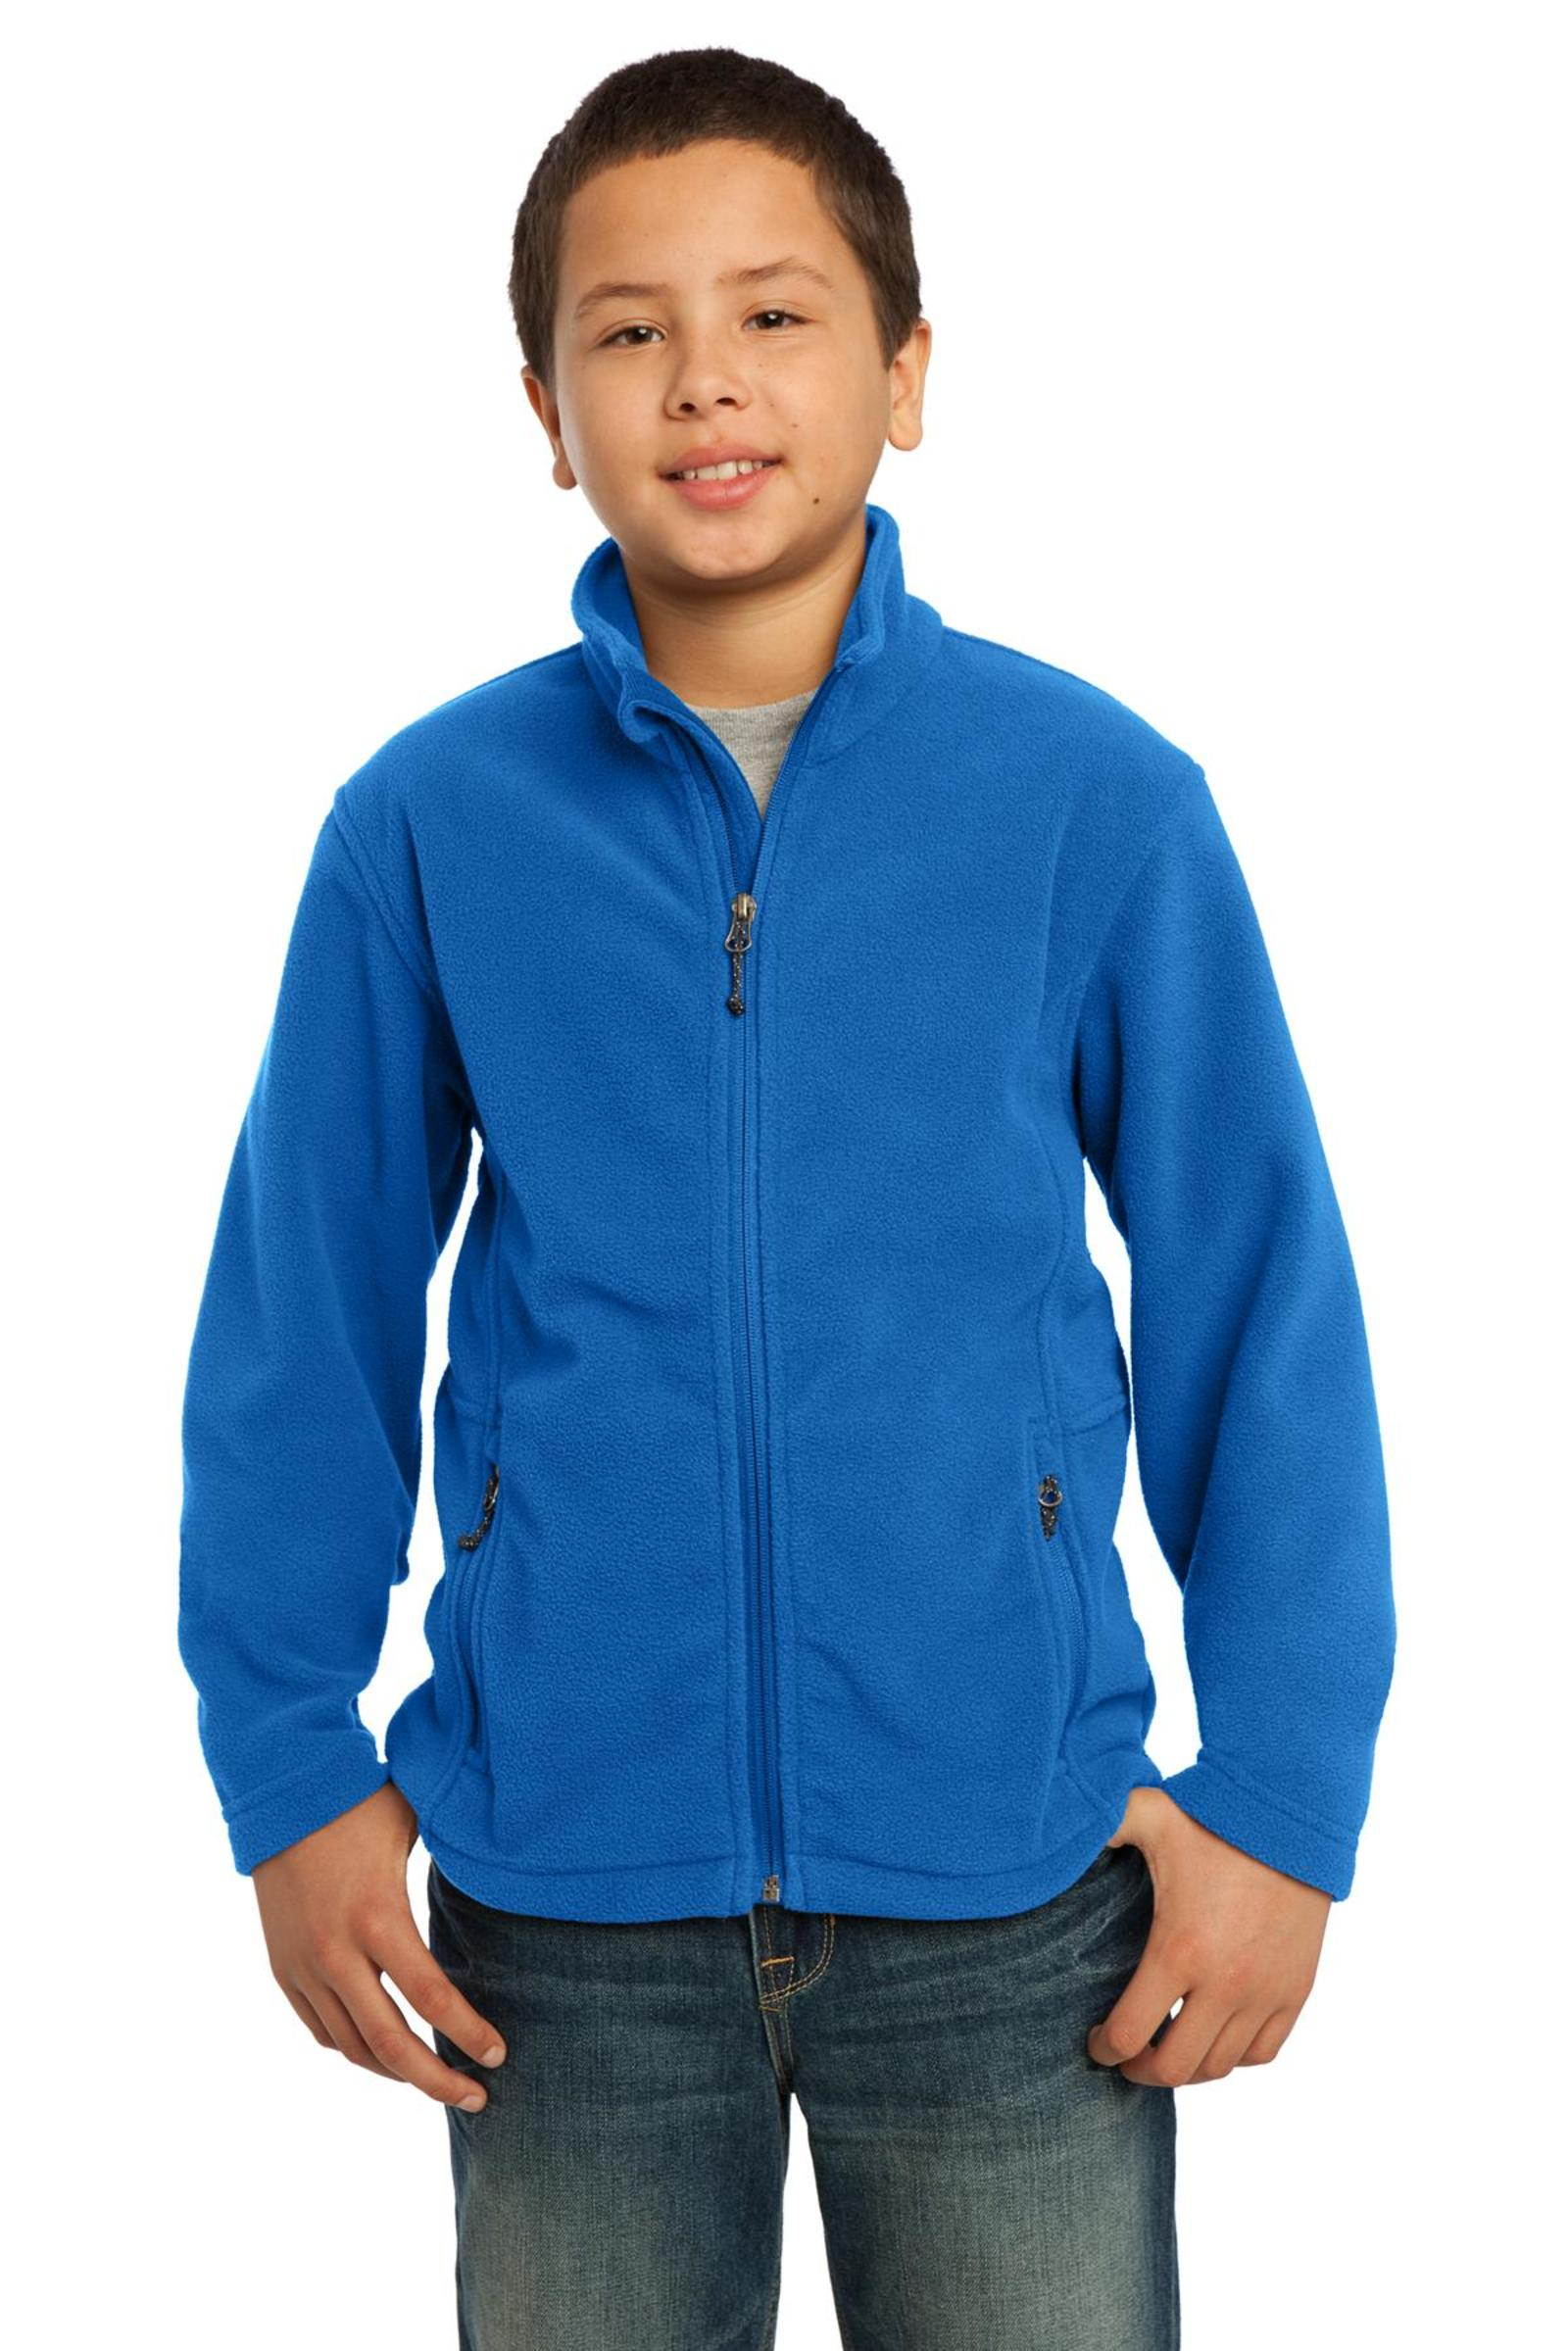 Port Authority Youth Value Fleece Jacket